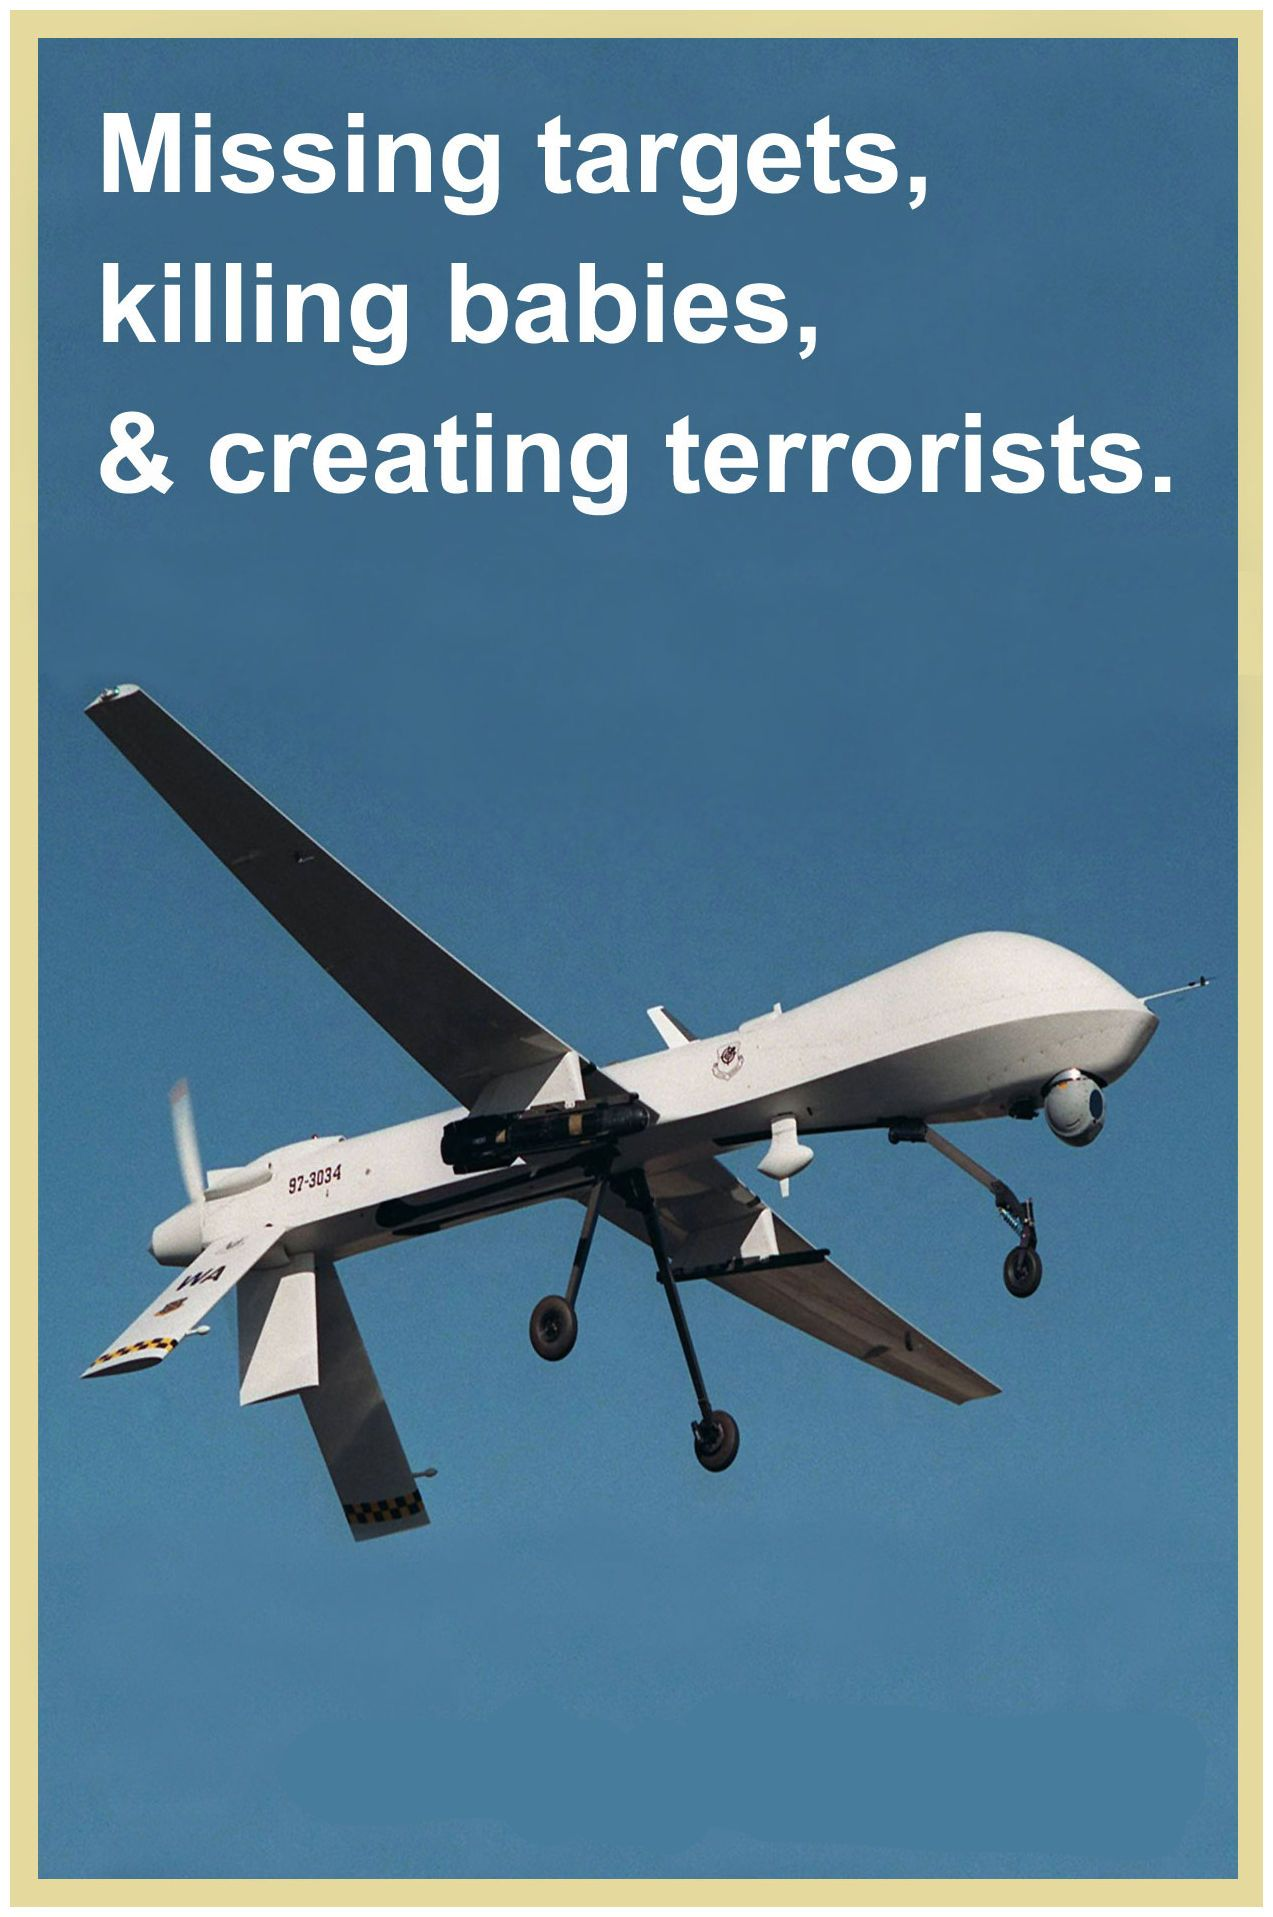 The new face of American serial killers: drone operators